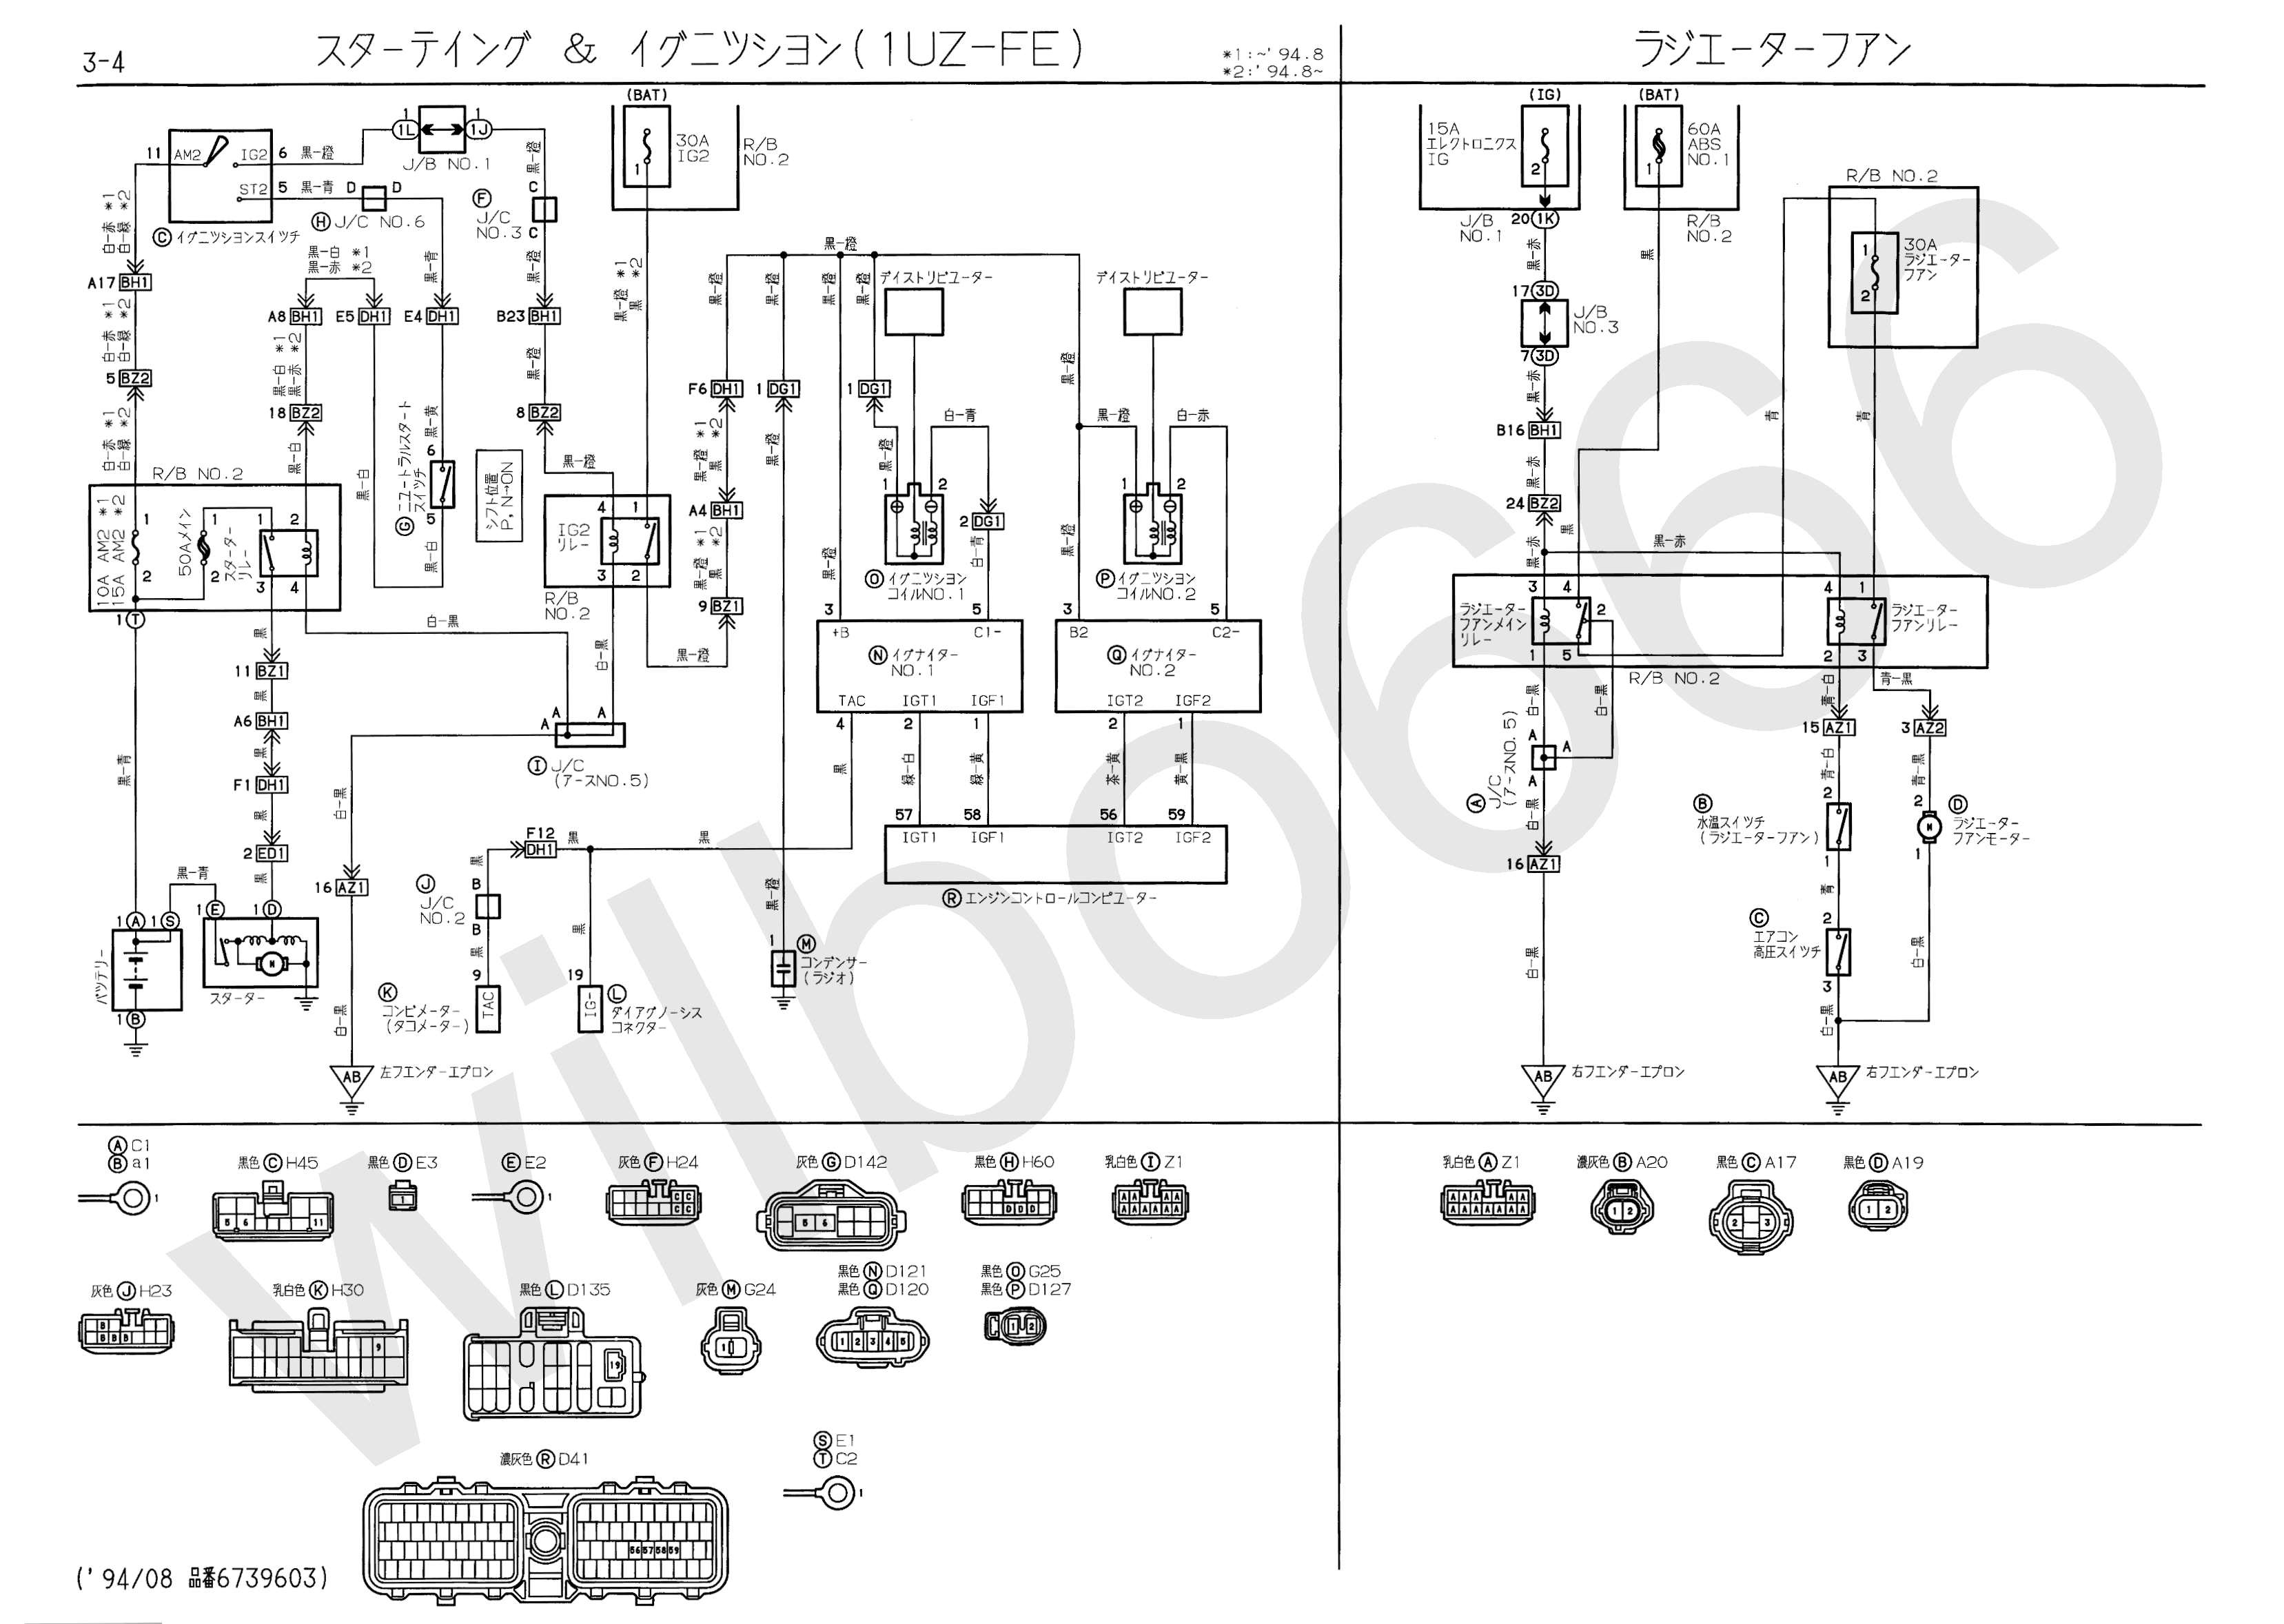 wilbo666 1uz fe uzs143 aristo engine wiring electrical wiring for dummies jzs14 , uzs14 electrical wiring diagram book 6739604